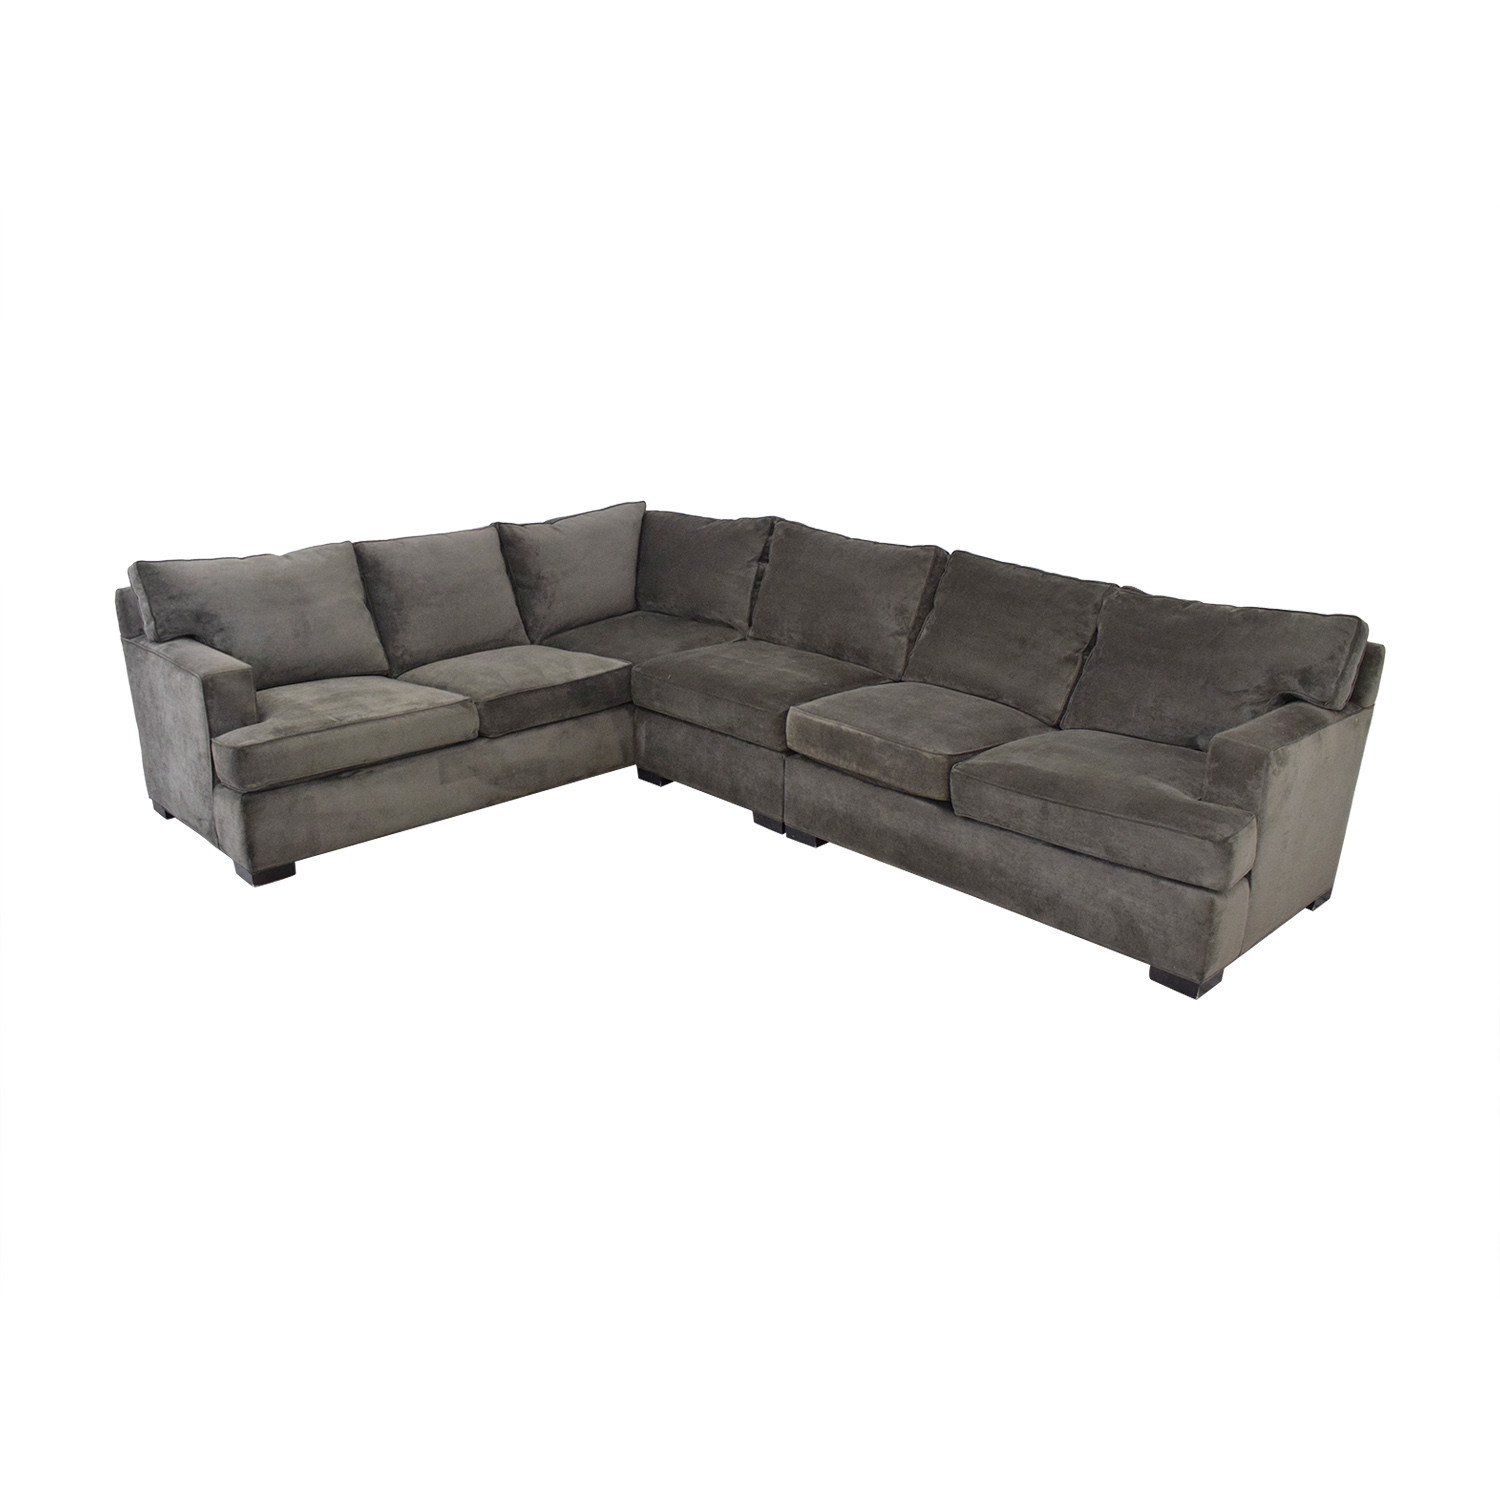 Arhaus Arhaus Dune Sectional Sofa price